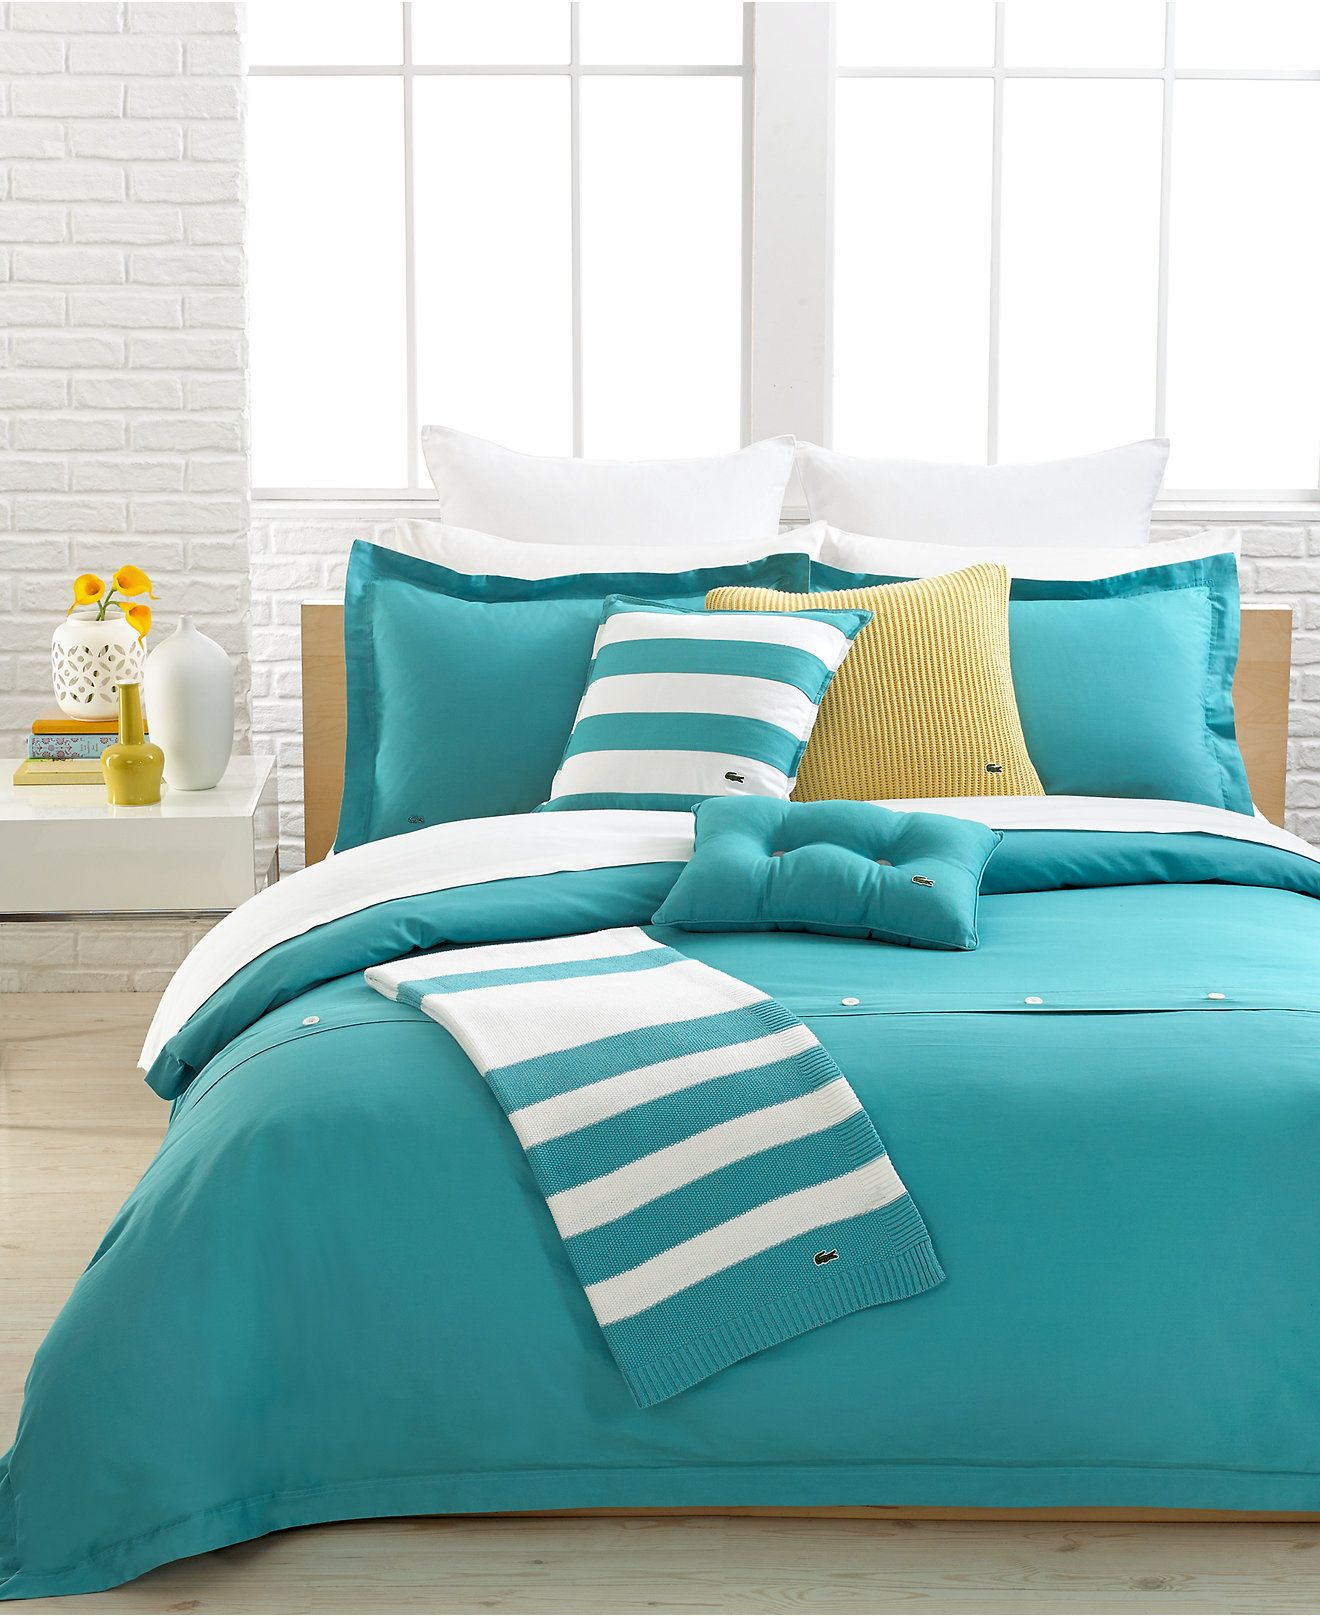 Macy Bedroom Furniture Closeout Closeout Lacoste Solid Stillwater Brushed Twill Comforter And